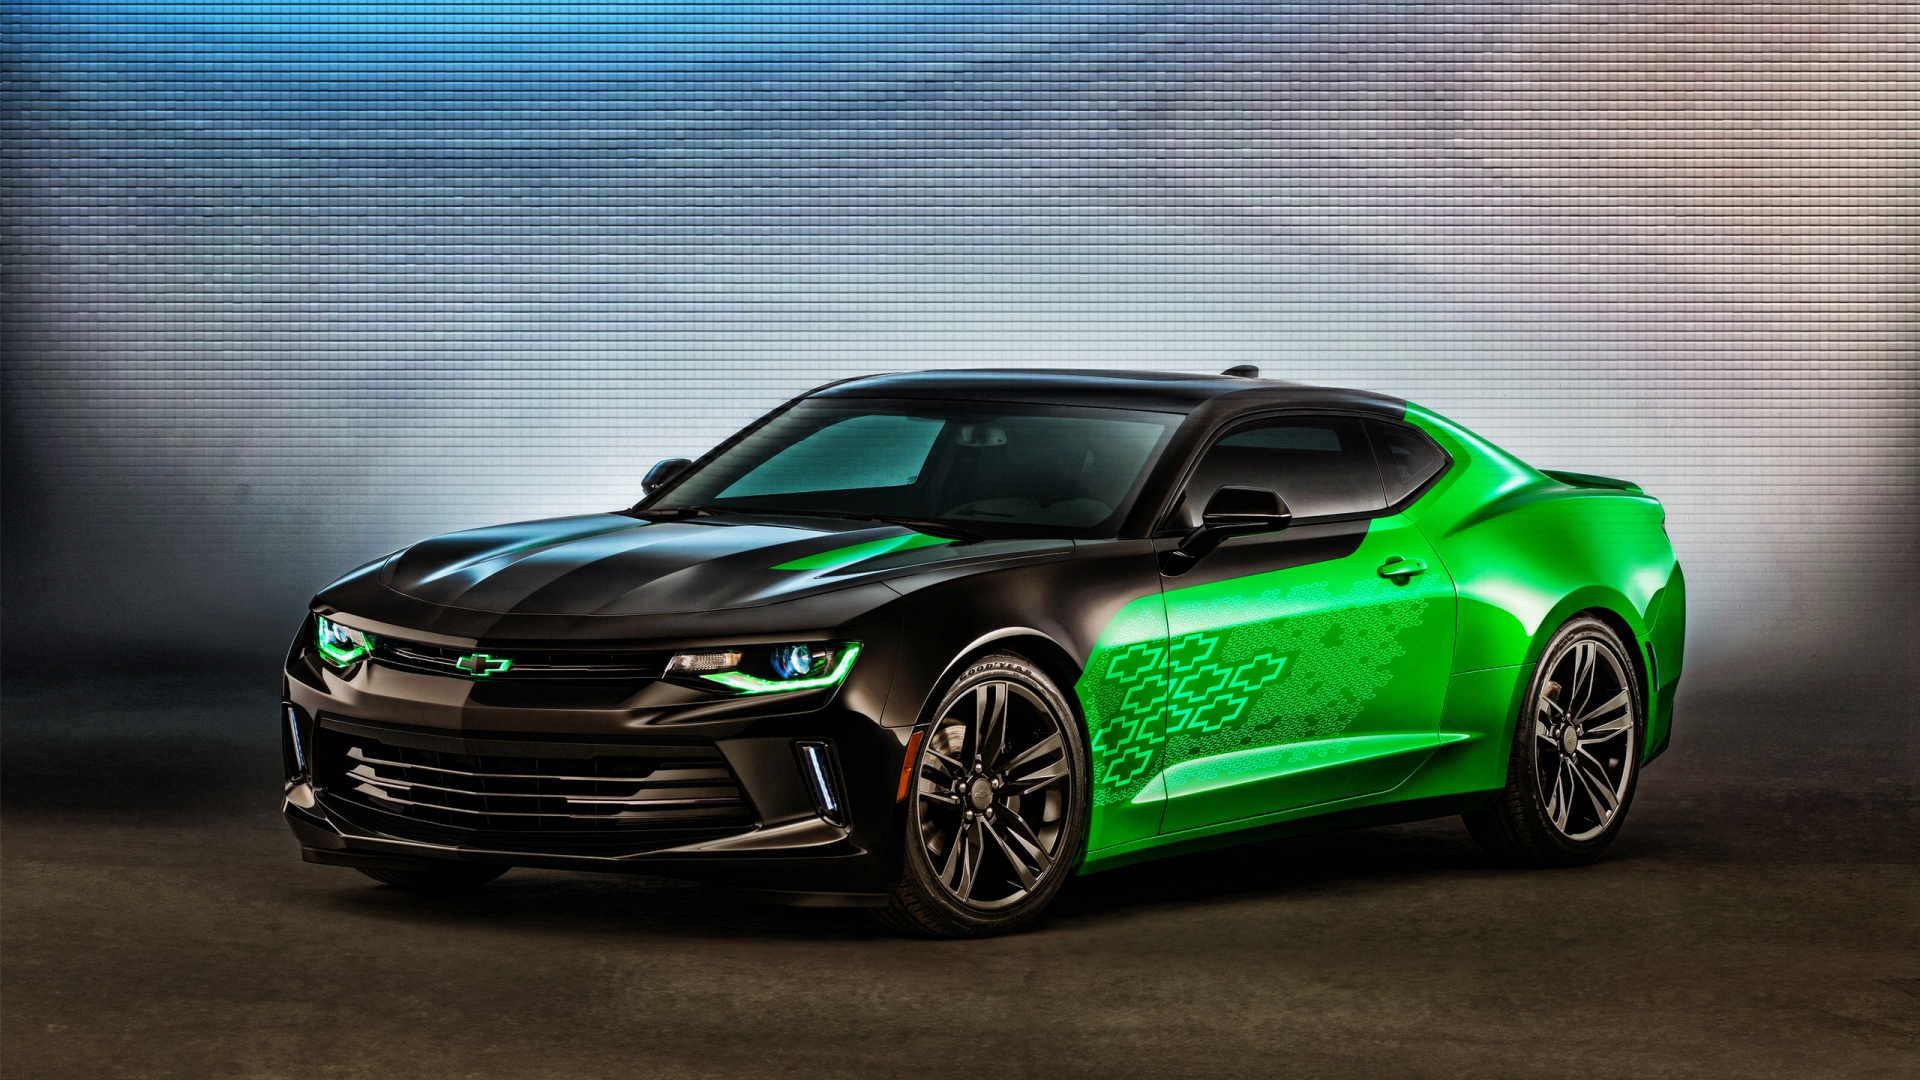 2016 Chevy Camaro Wallpaper HD Car Wallpapers 1920x1080